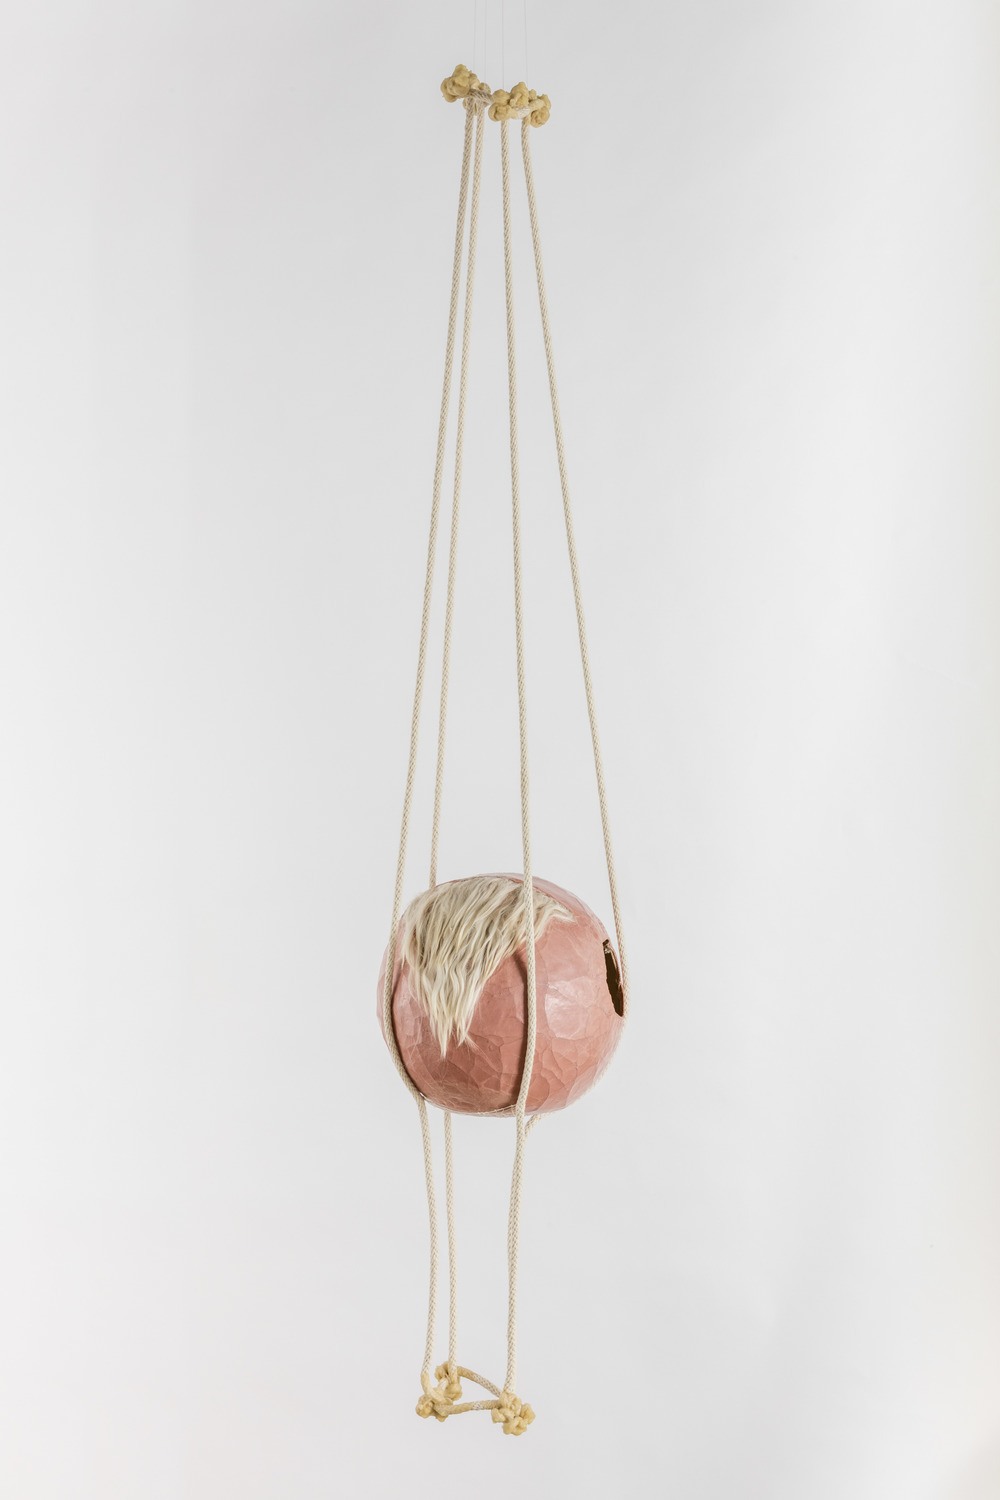 Tanya Aguiniga   Gynic Dispossession 3 , 2016  Cotton rope, cotton thread, canvas, self-drying clay, alpaca and beeswax  56 x 12 x 12 inches